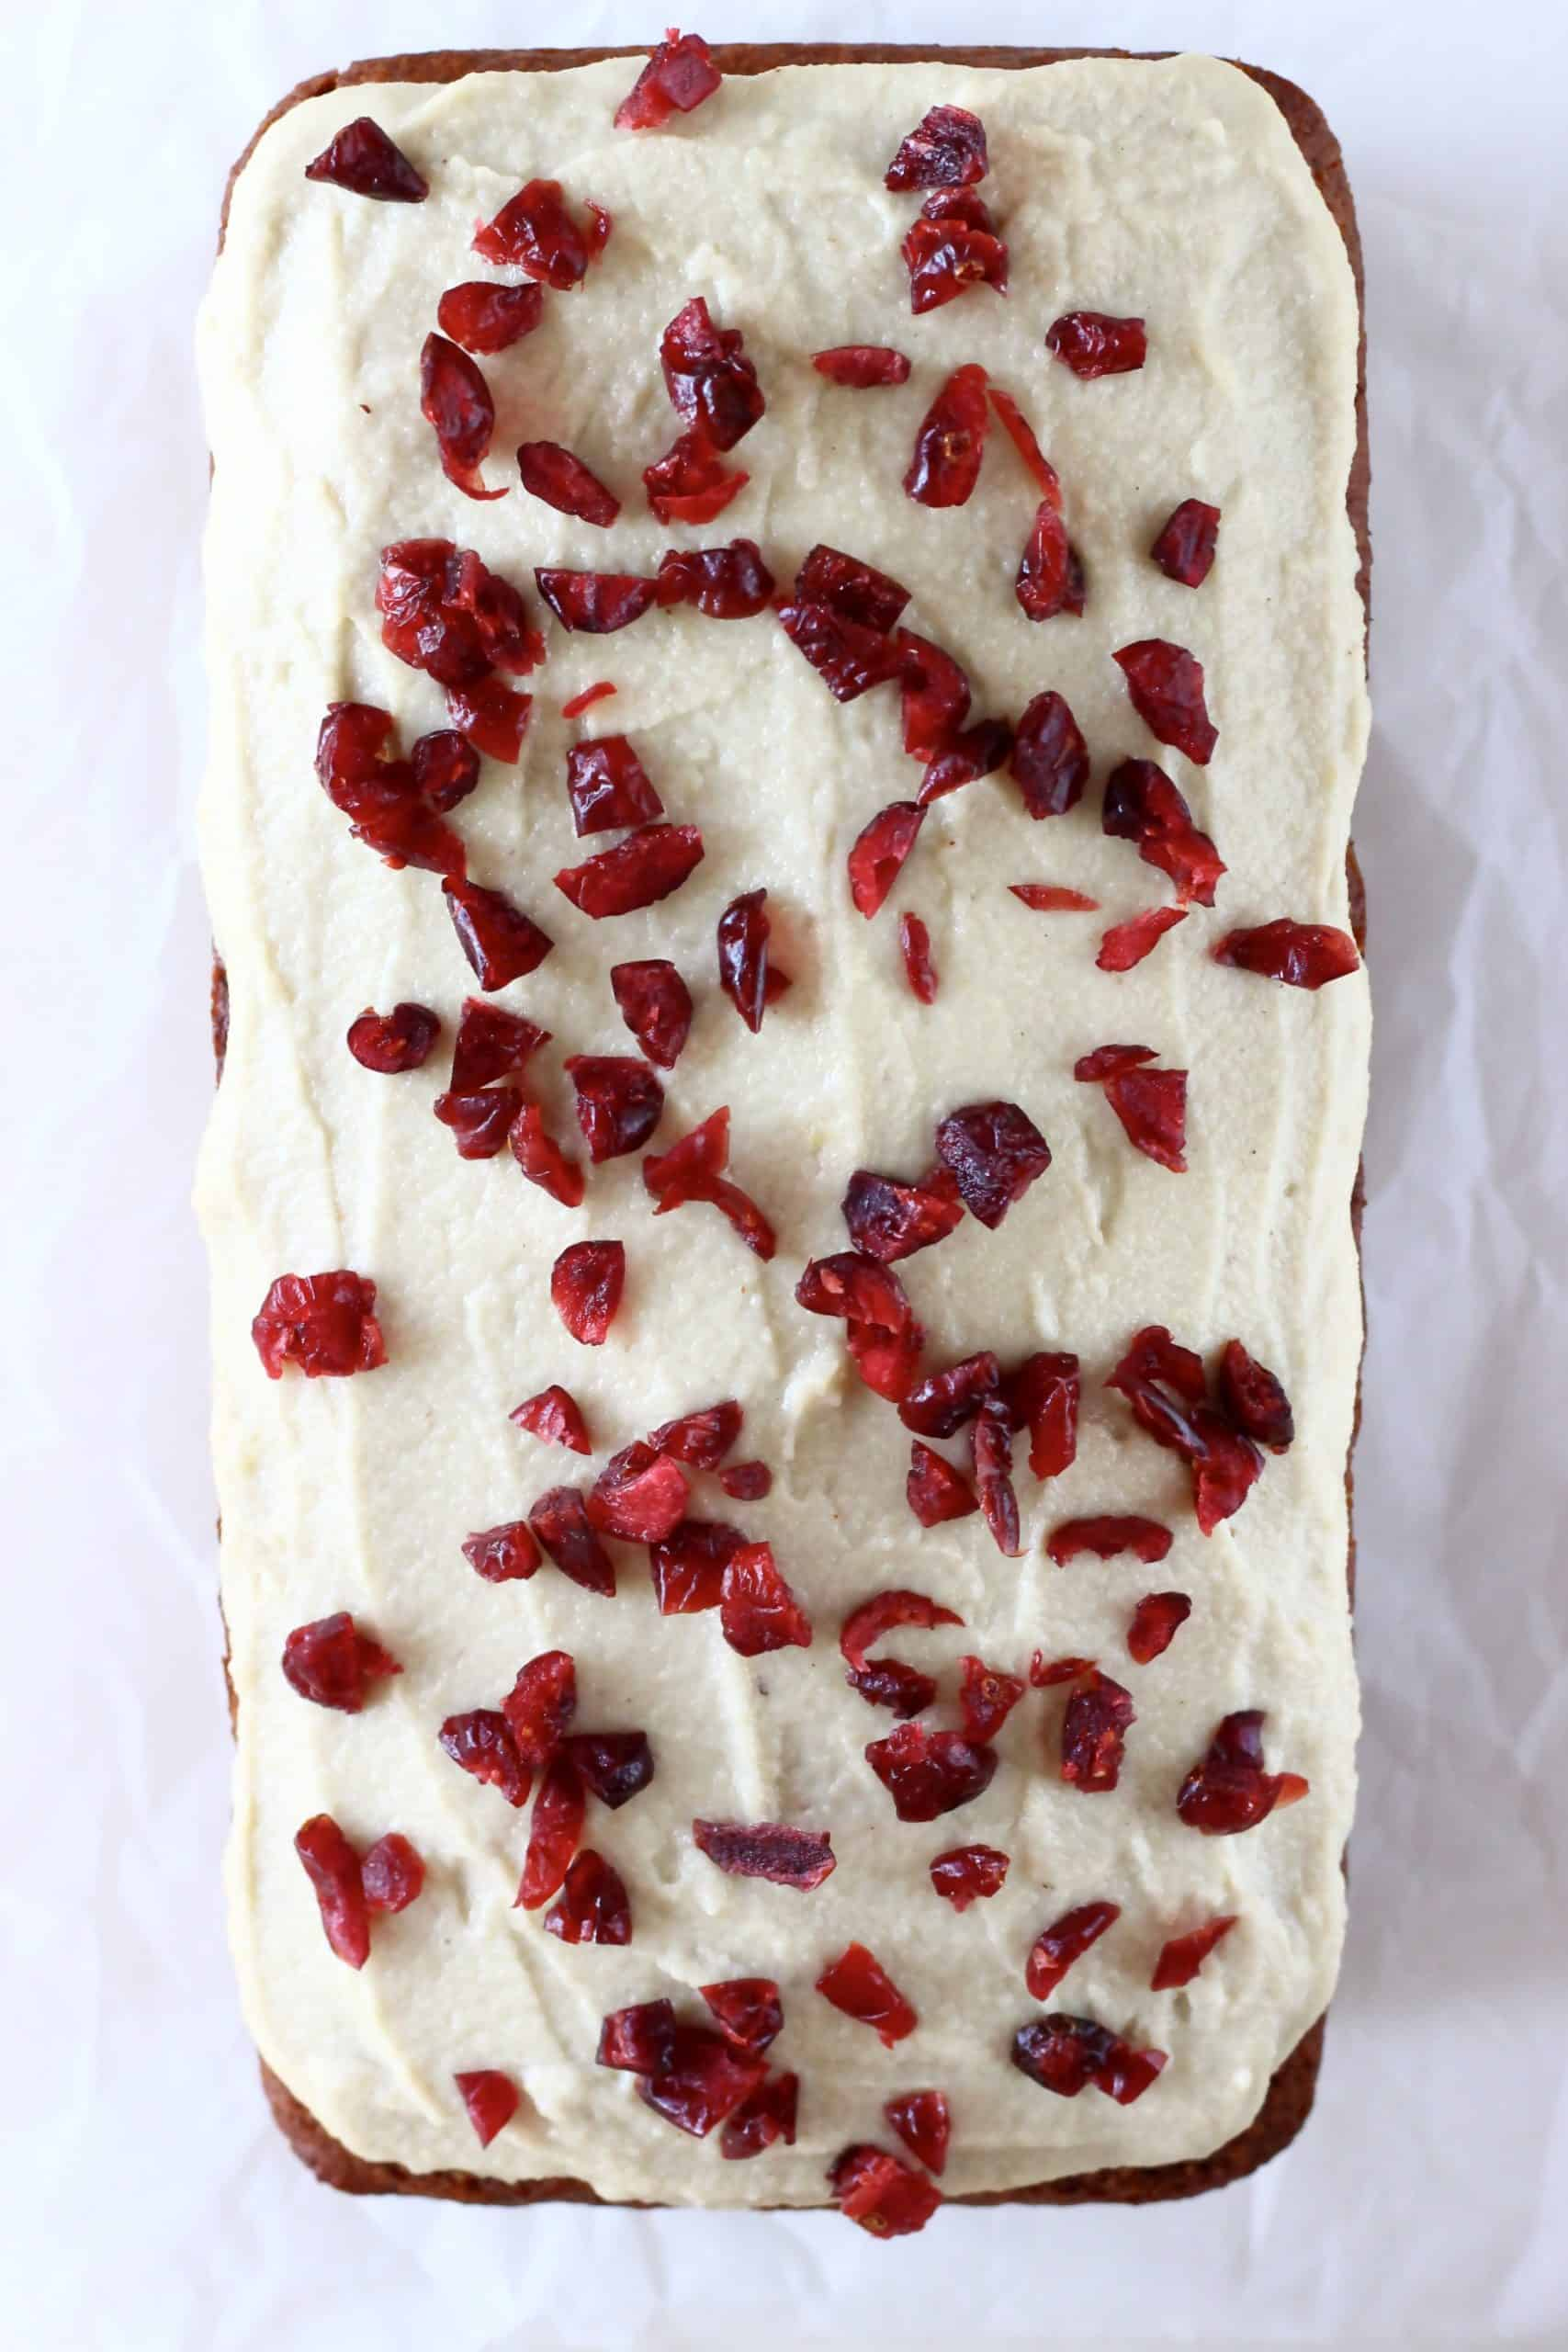 A gluten-free vegan gingerbread loaf cake with vegan cream cheese frosting and dried cranberries on top